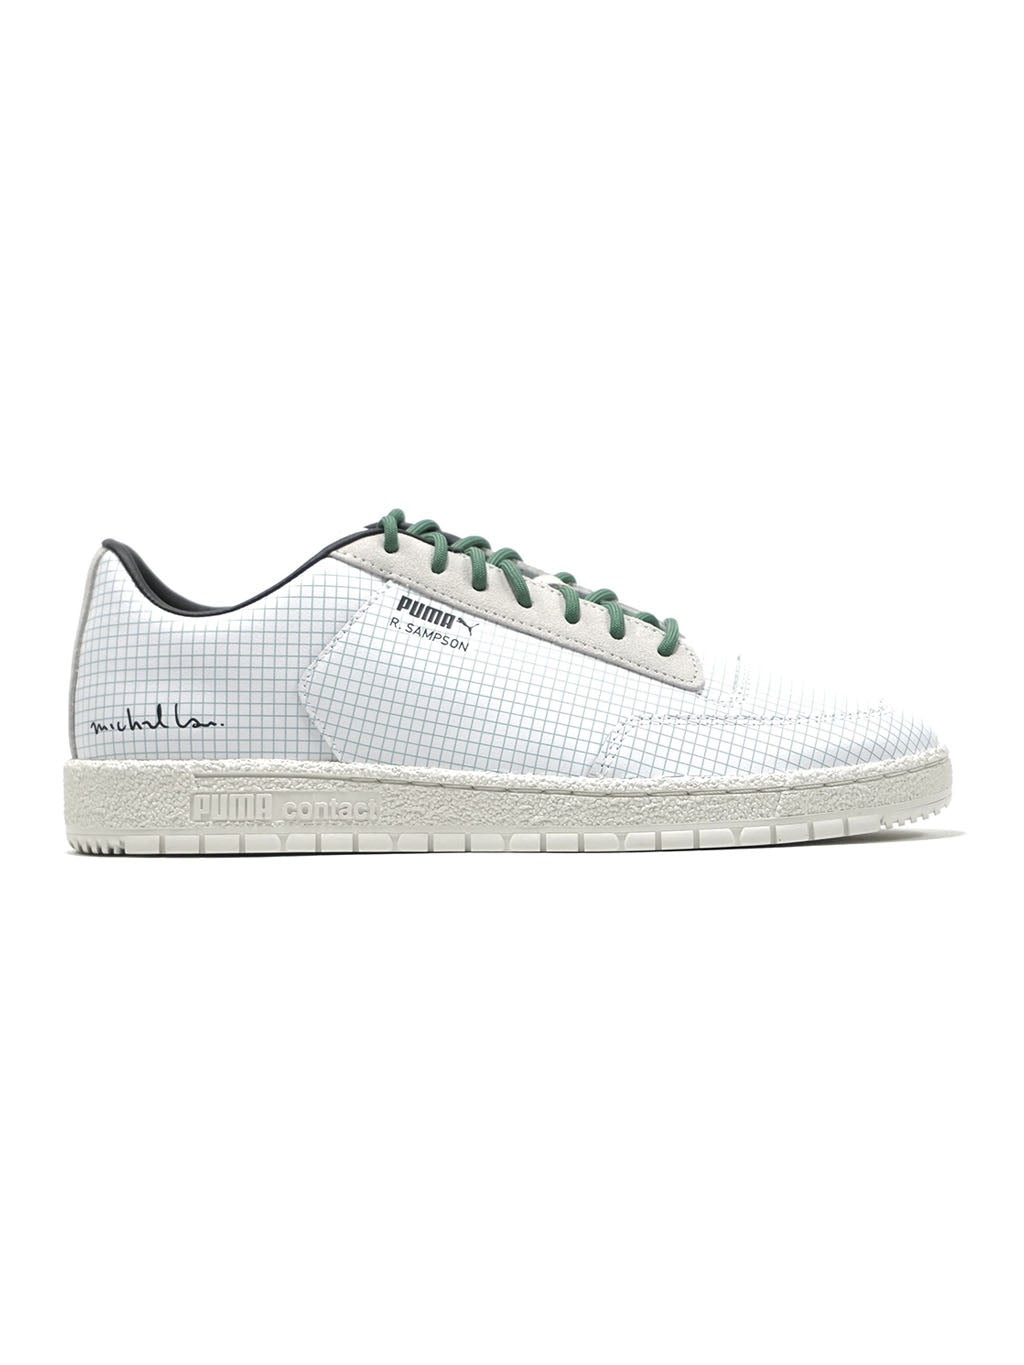 White and Green Michael Lau x Puma Ralph Sampson 70 Clean Sneakers